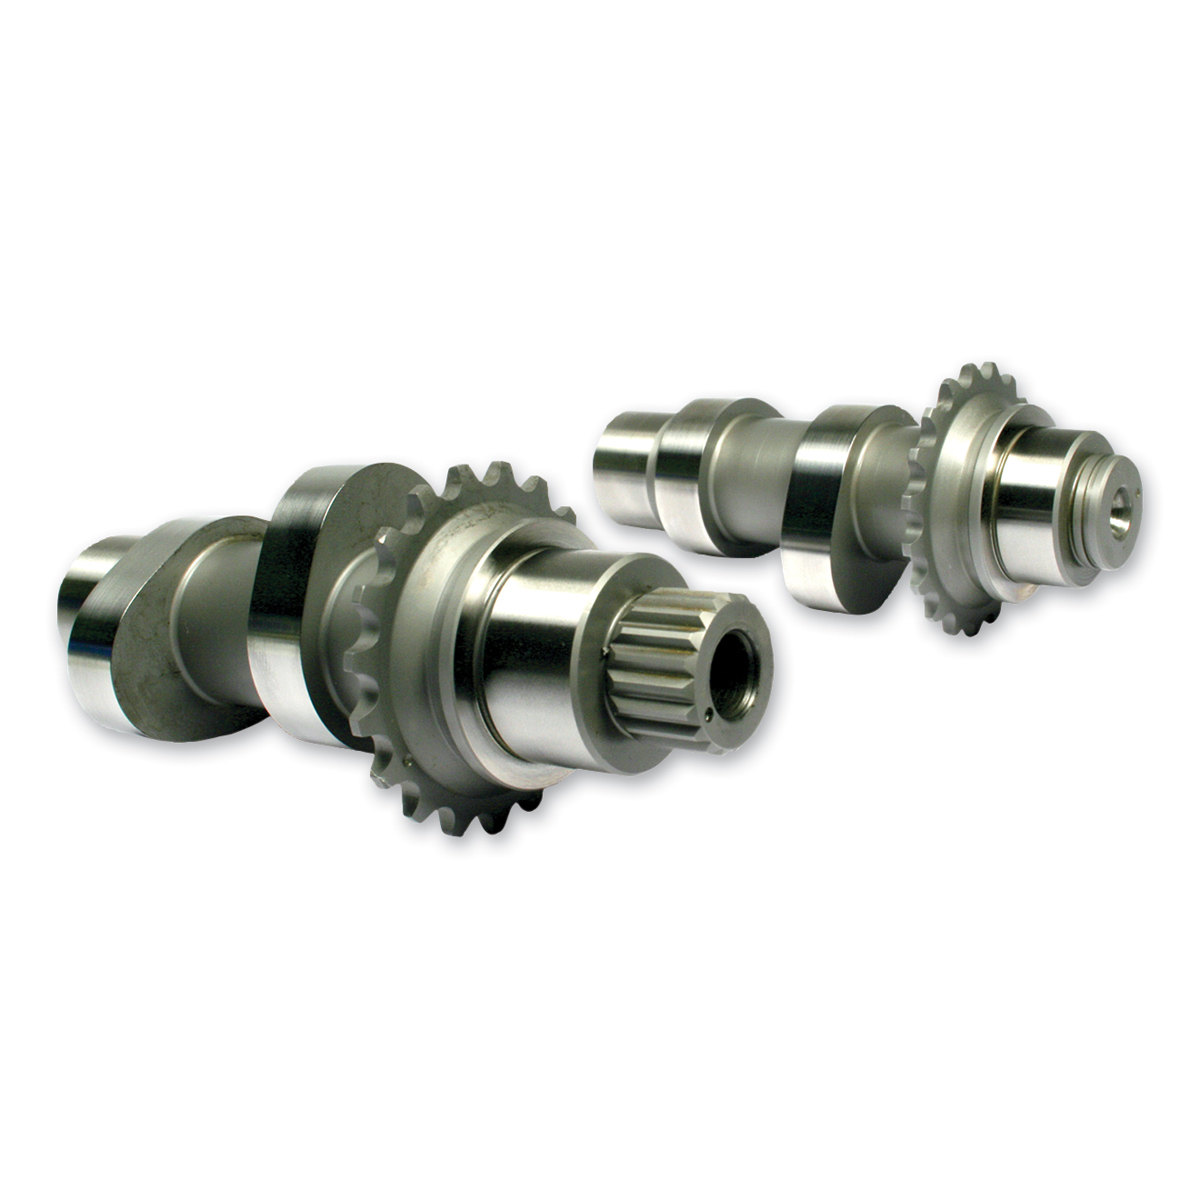 Feuling 594 REAPER Conversion Chain Drive Camshafts